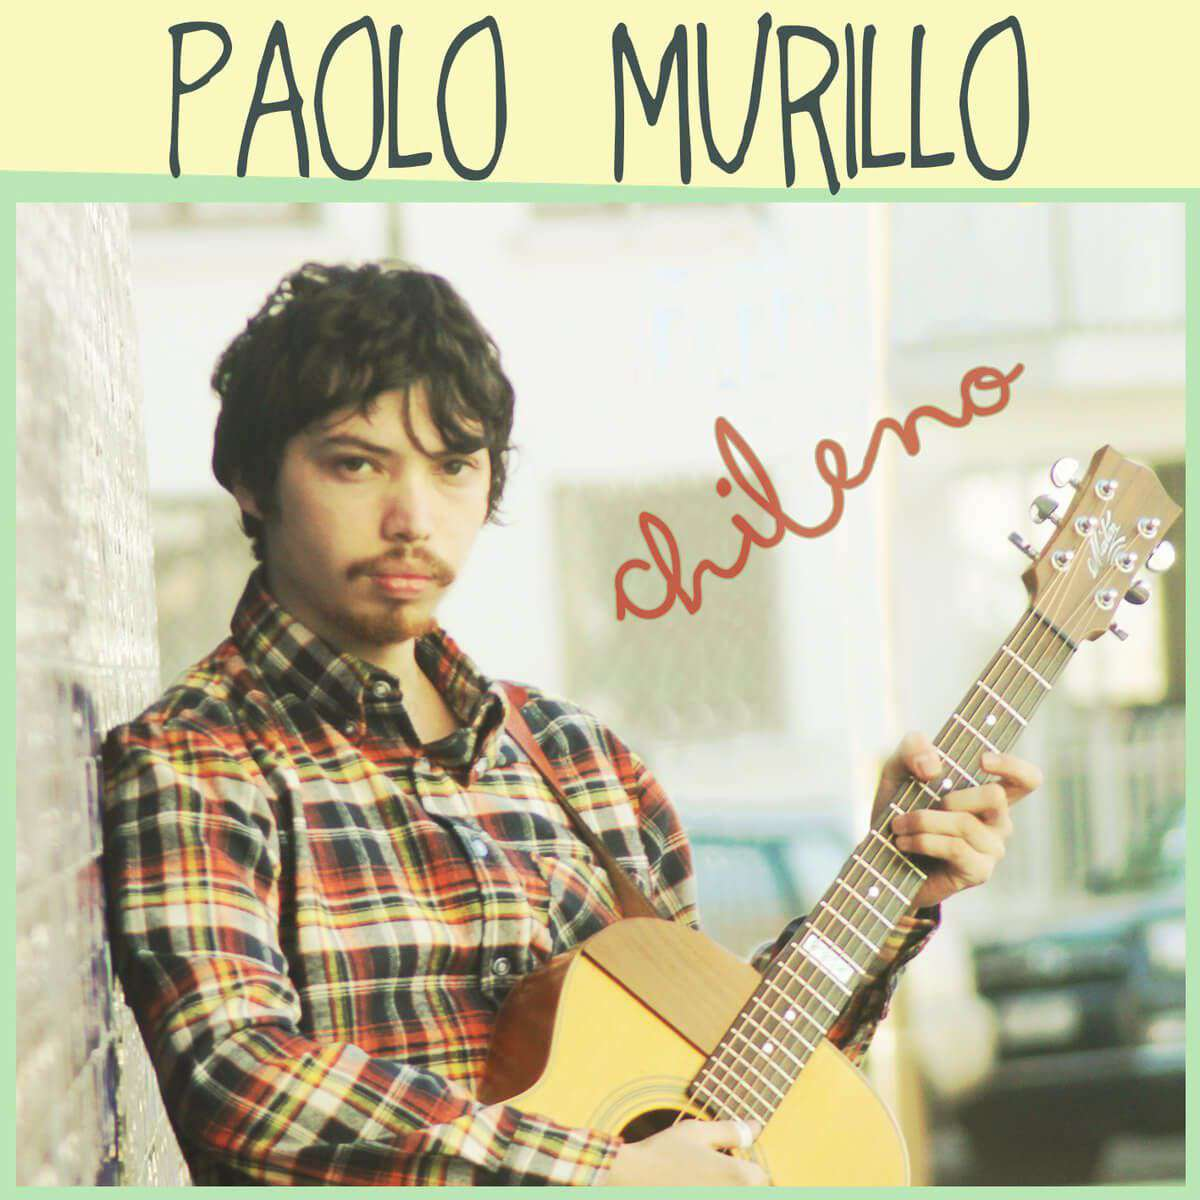 Paolo Murillo – Chileno (2013)